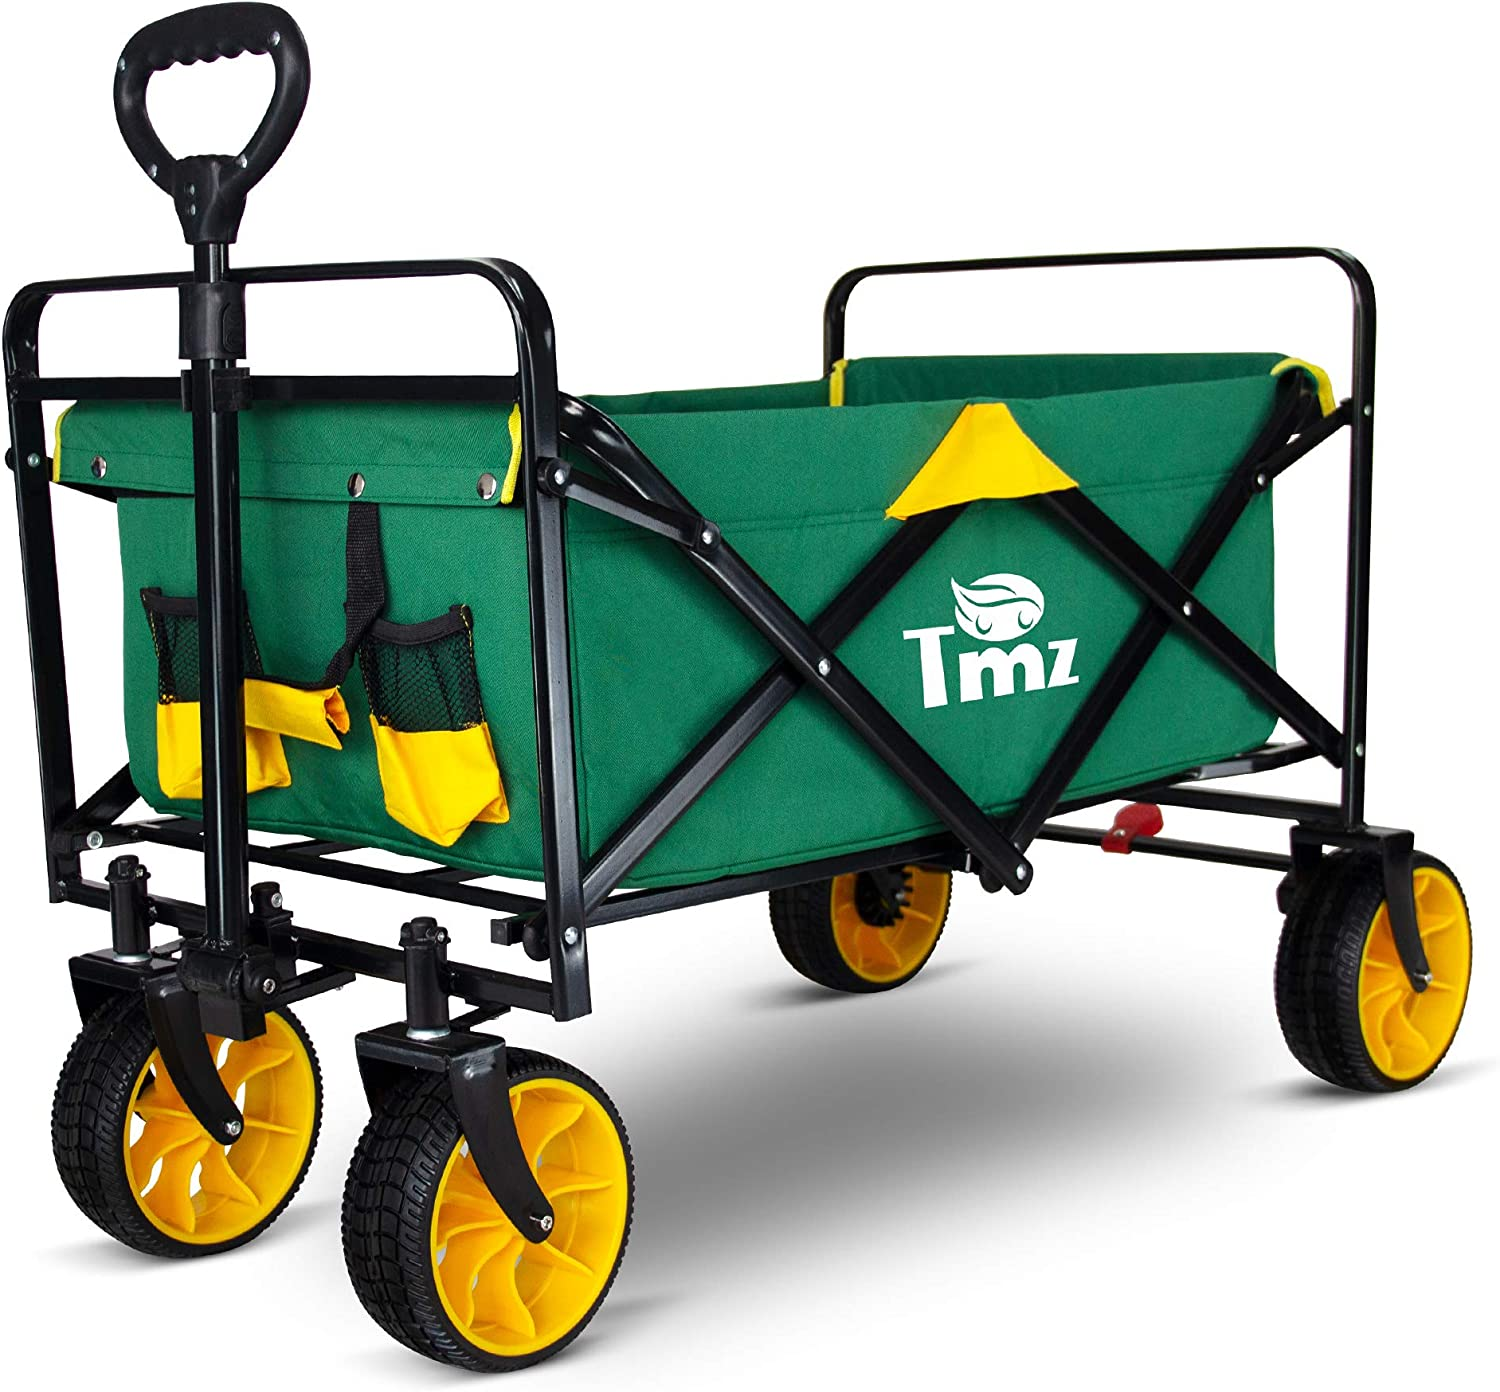 TMZ Folding Collapsible Outdoor Utility Wagon Cart, Heavy Duty Garden Cart with Rubber Tires and Carrying Bag for Shopping, Beach, Yard (Green/Yellow)